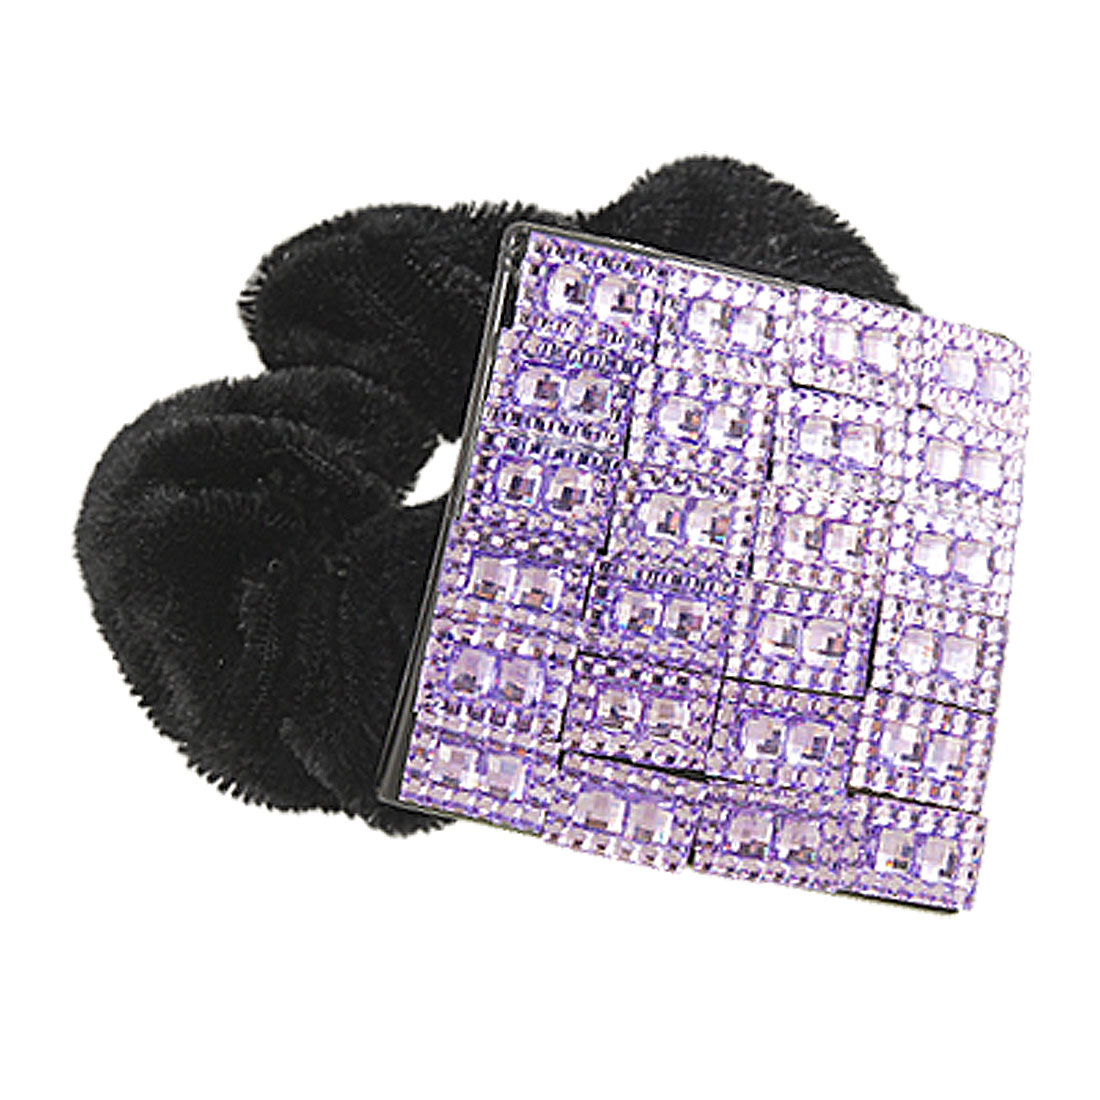 Girls Purple Black Glitter Rhinestone Square Elastic Hair Circle